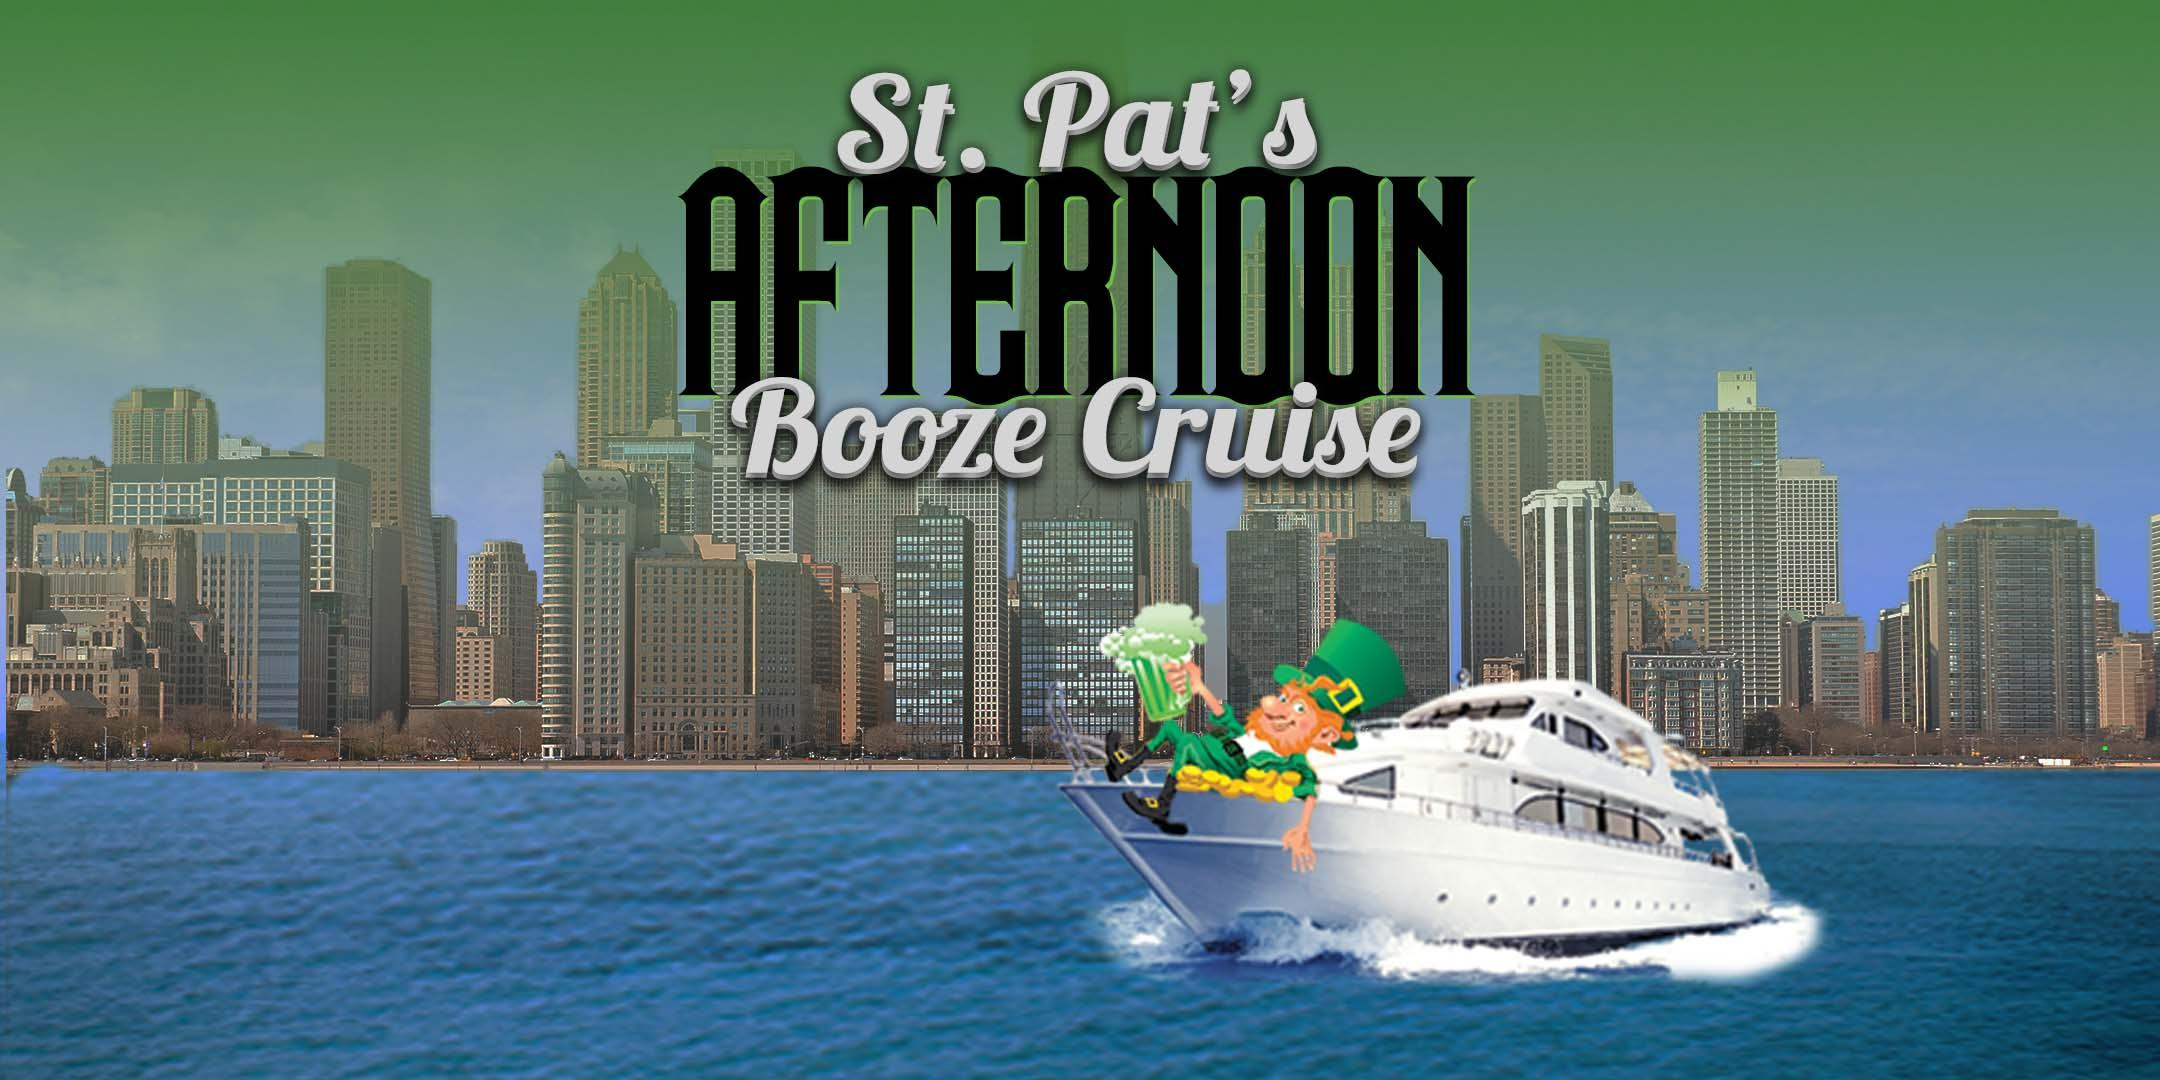 St. Pat's Afternoon Booze Cruise on March 17th on Anita Dee II! (1:30pm)